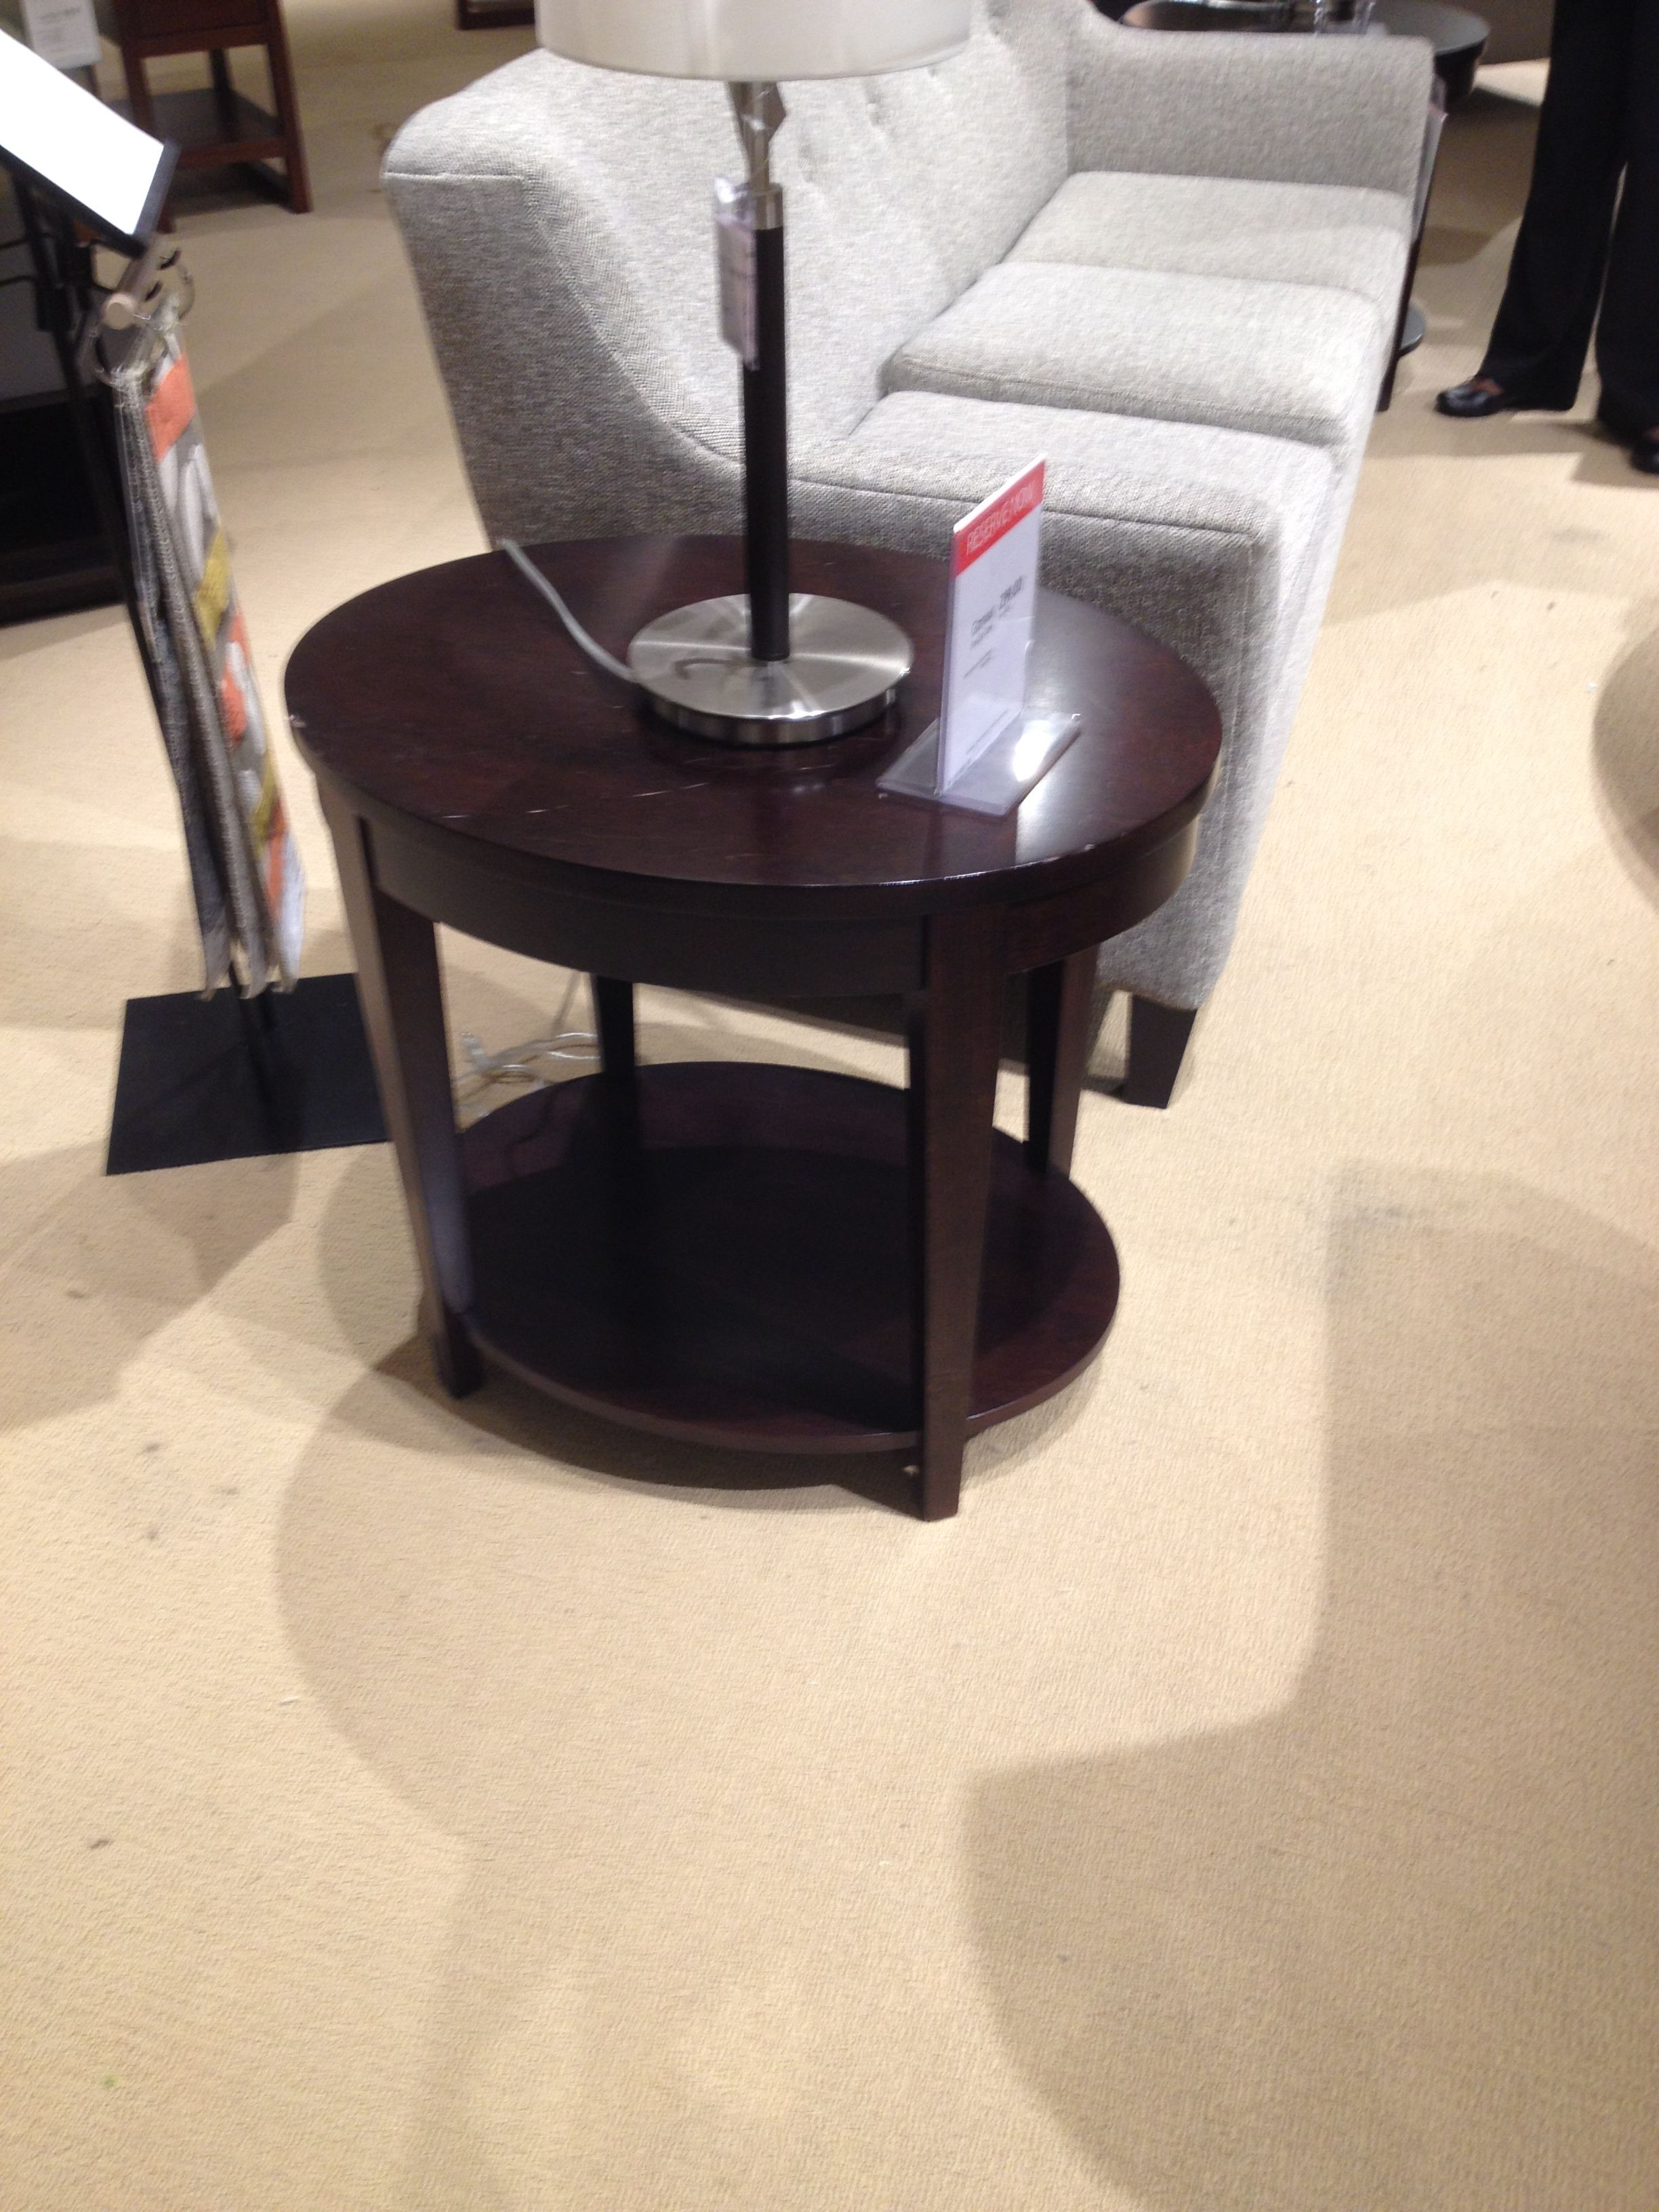 Macy's, item: Glamour Oval end table, price: $299.00